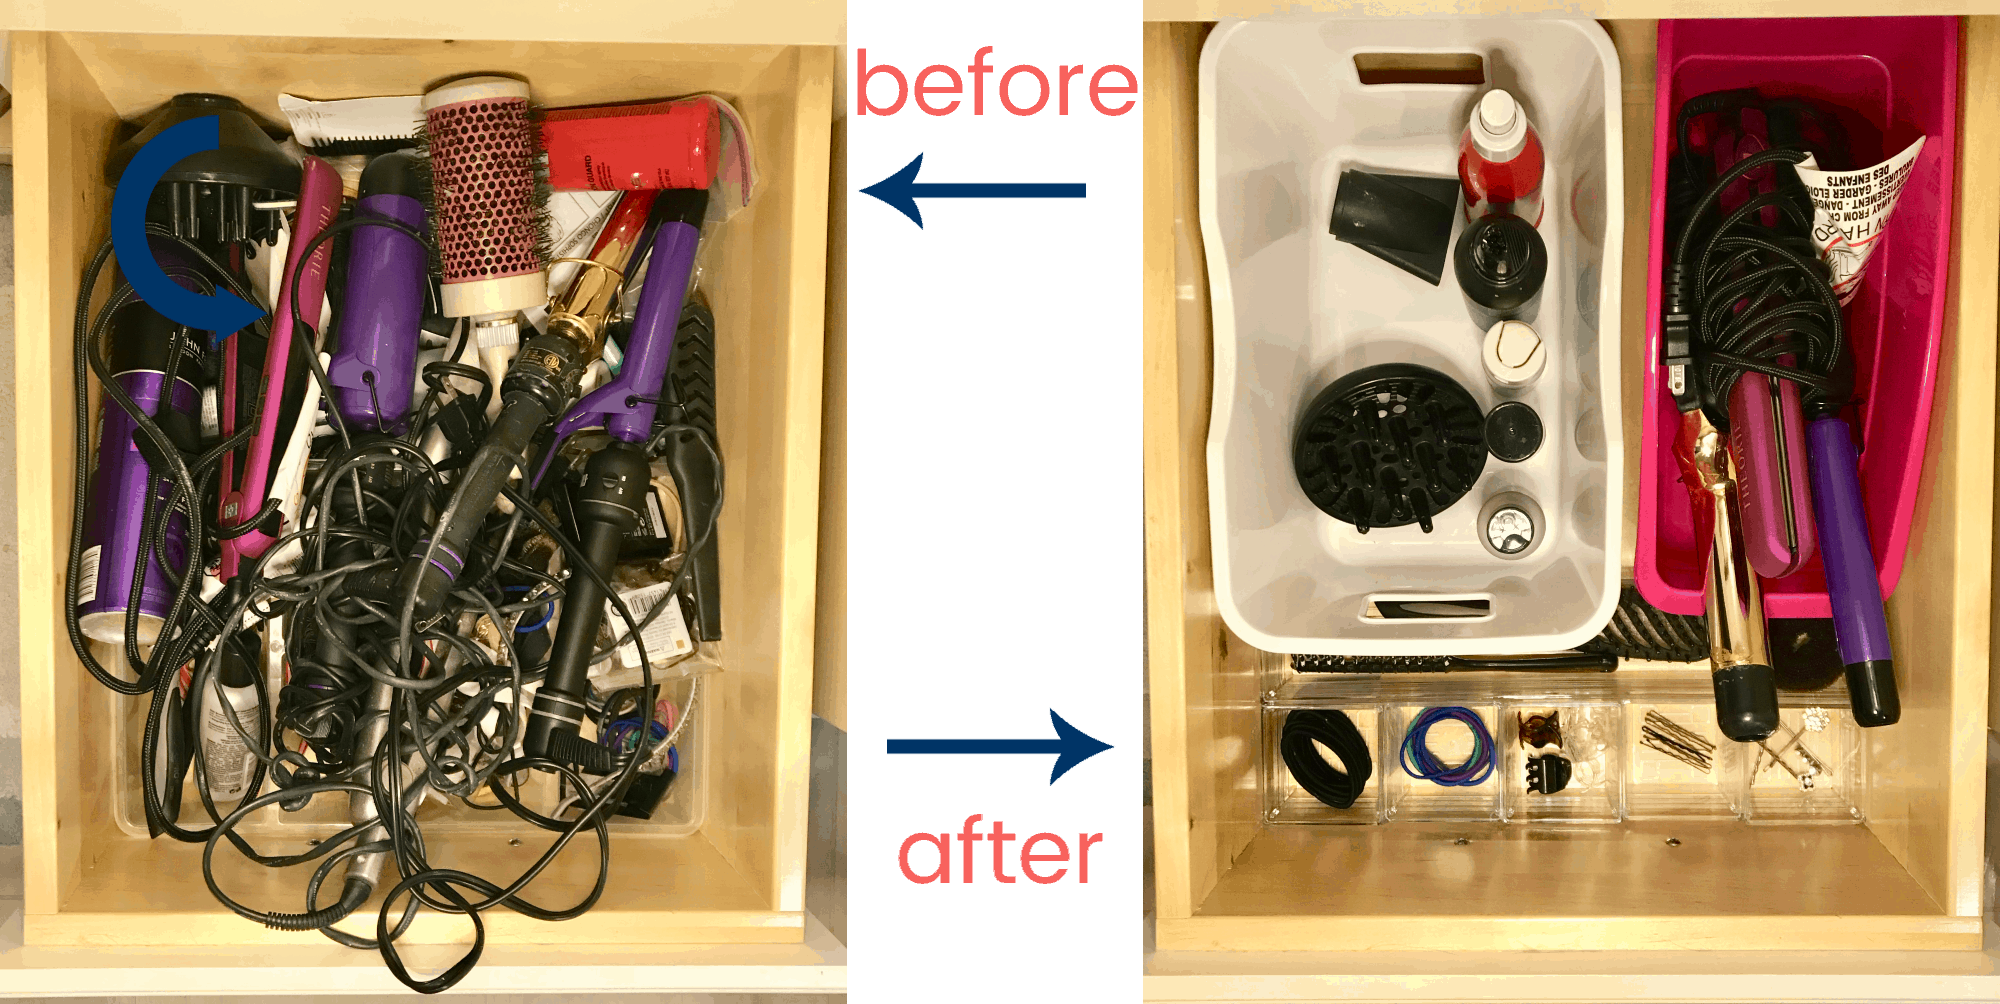 messy drawer on the left and organized drawer on the right